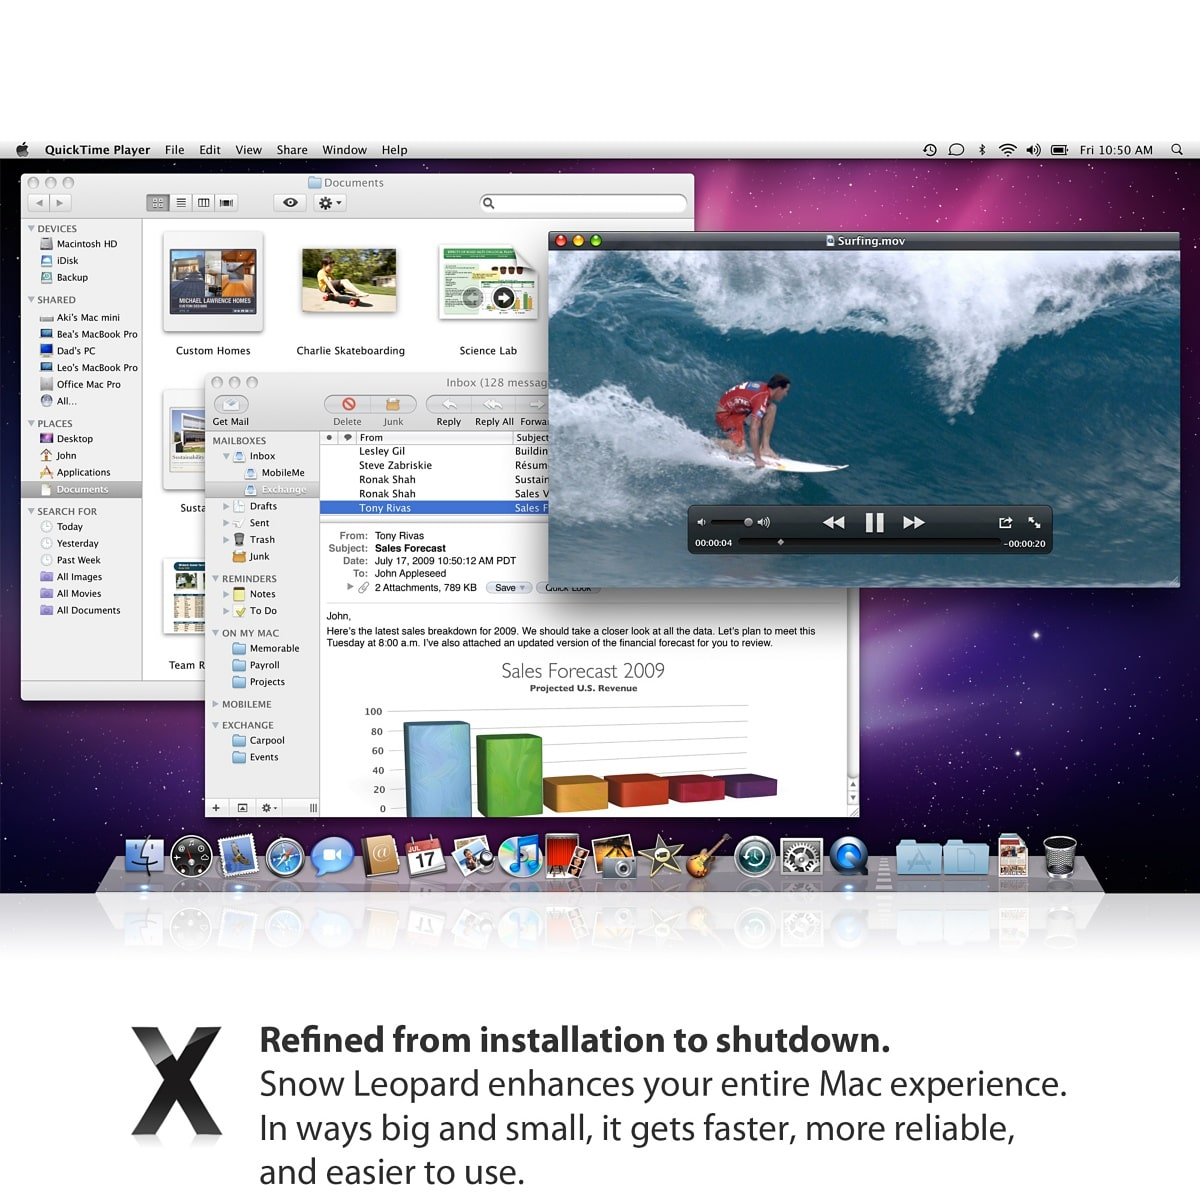 mac os x snow leopard ダウンロード